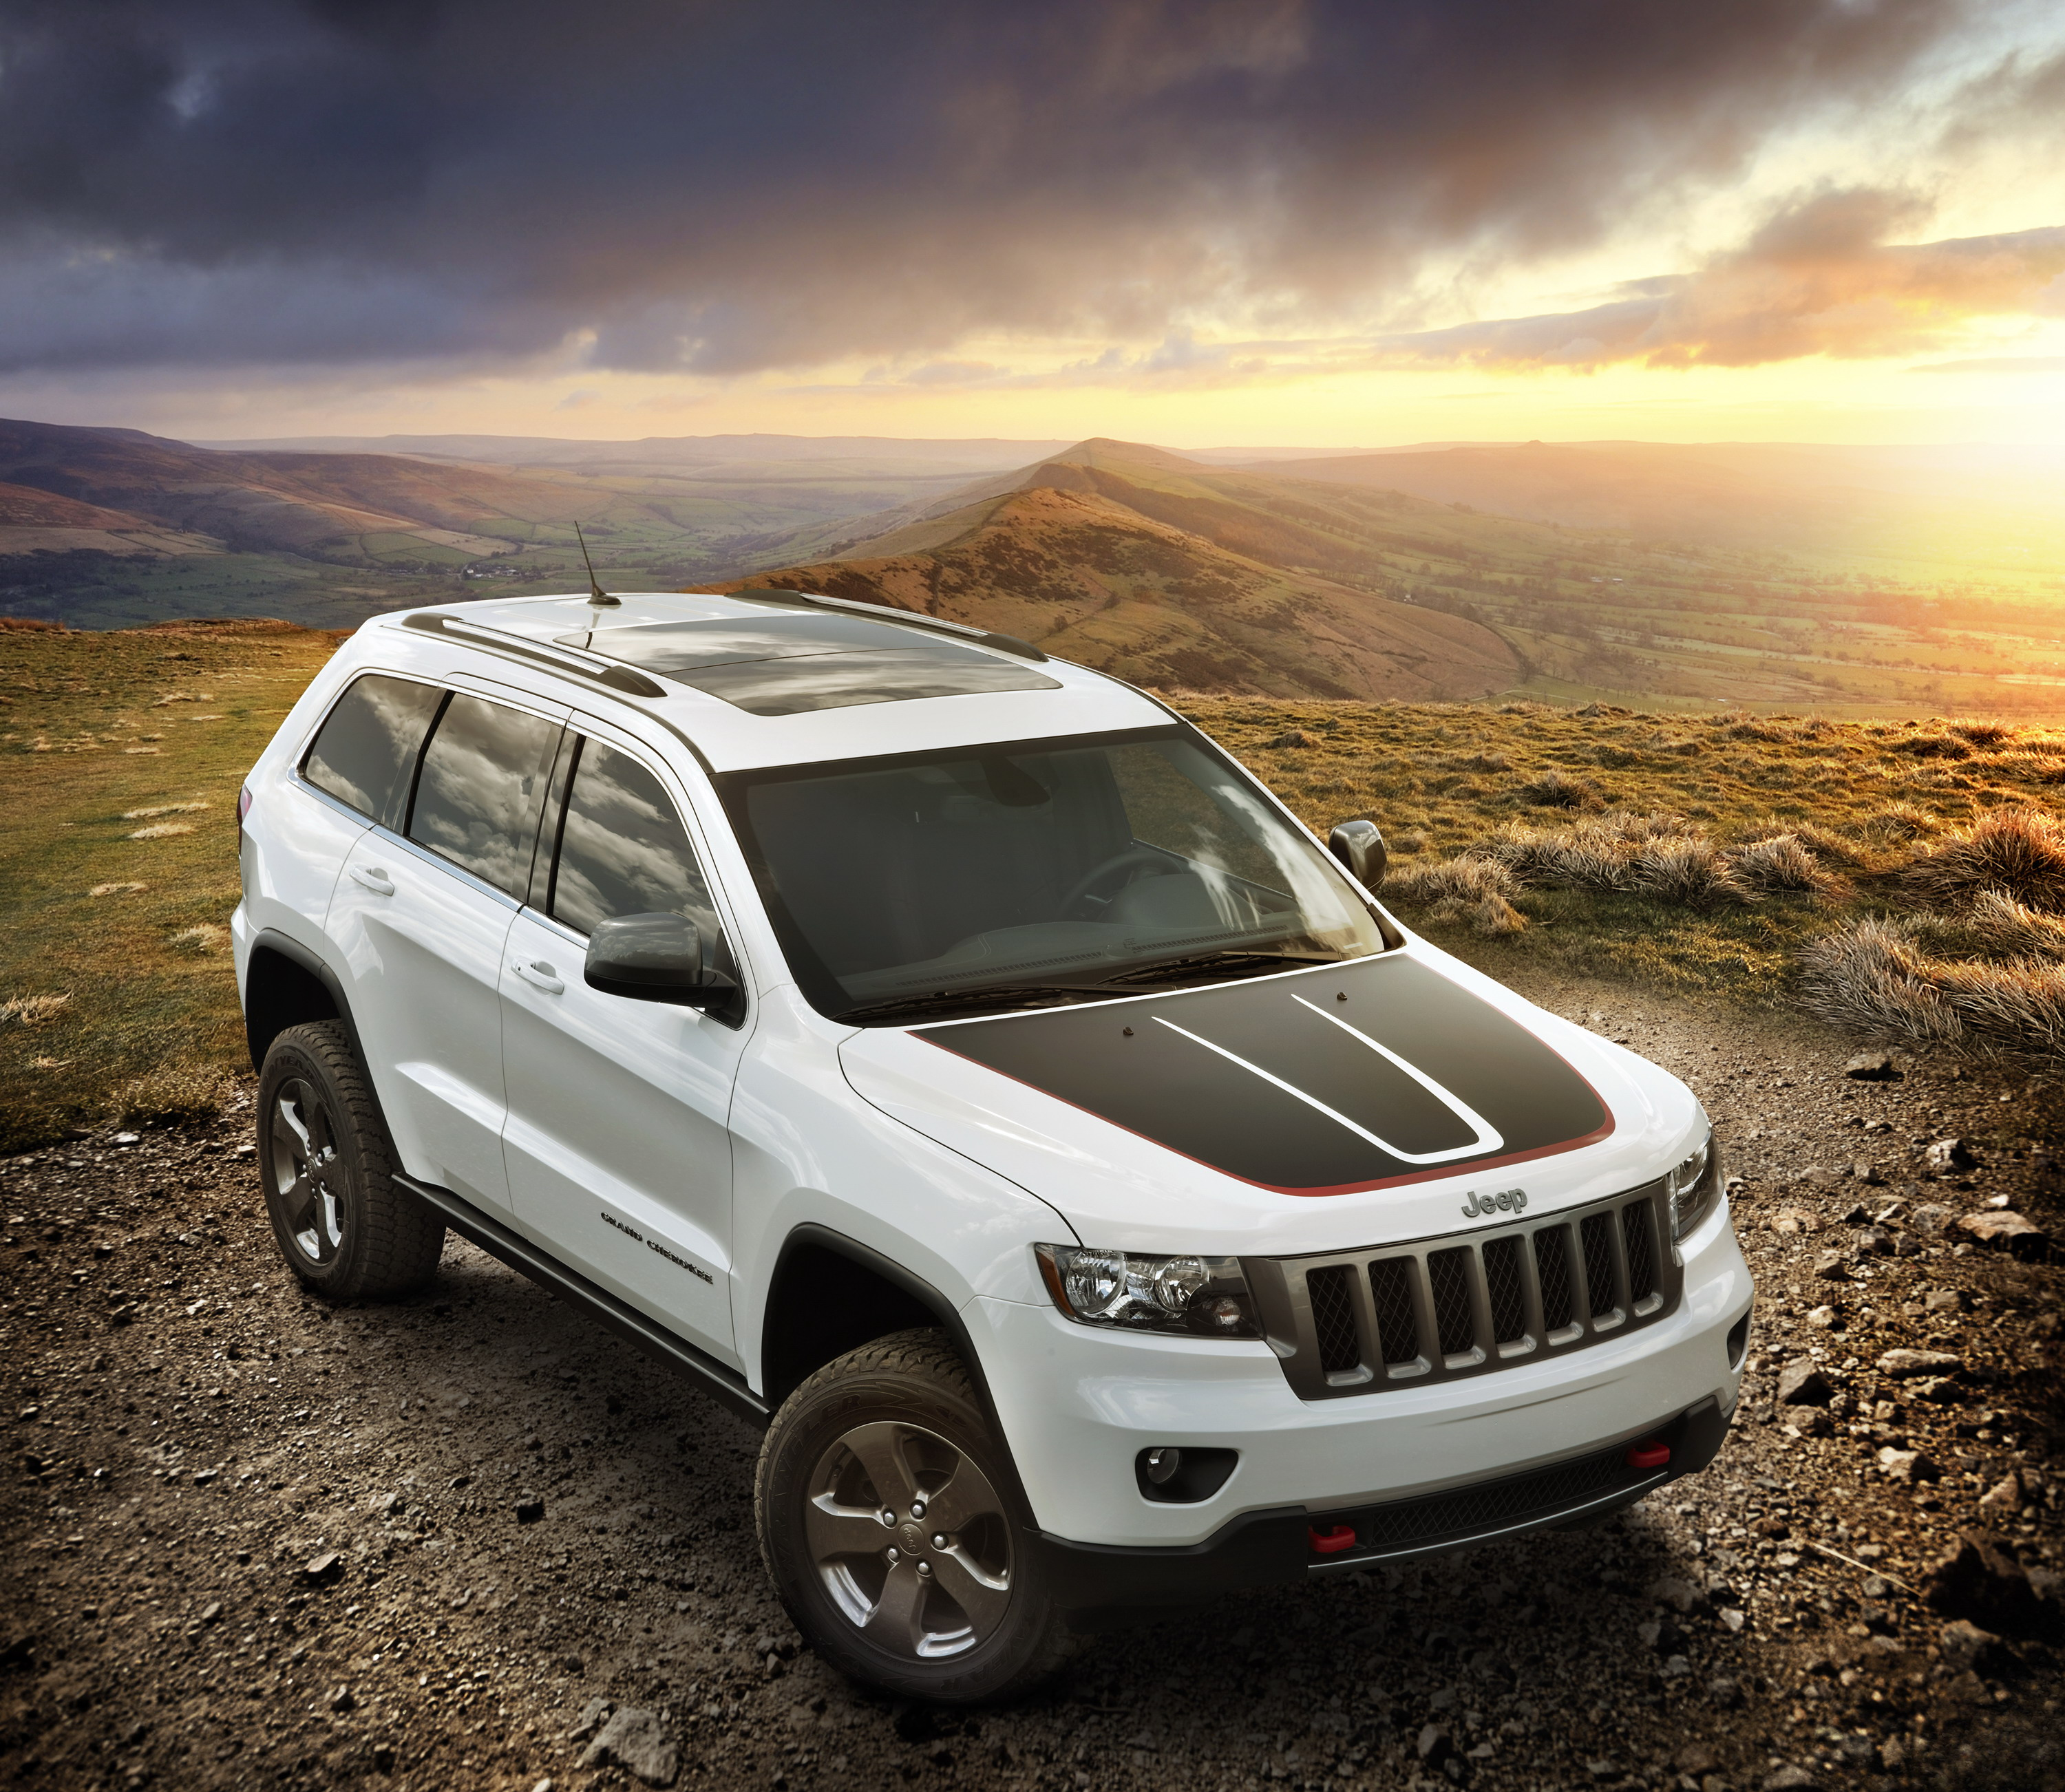 2013 jeep grand cherokee trailhawk top speed. Black Bedroom Furniture Sets. Home Design Ideas